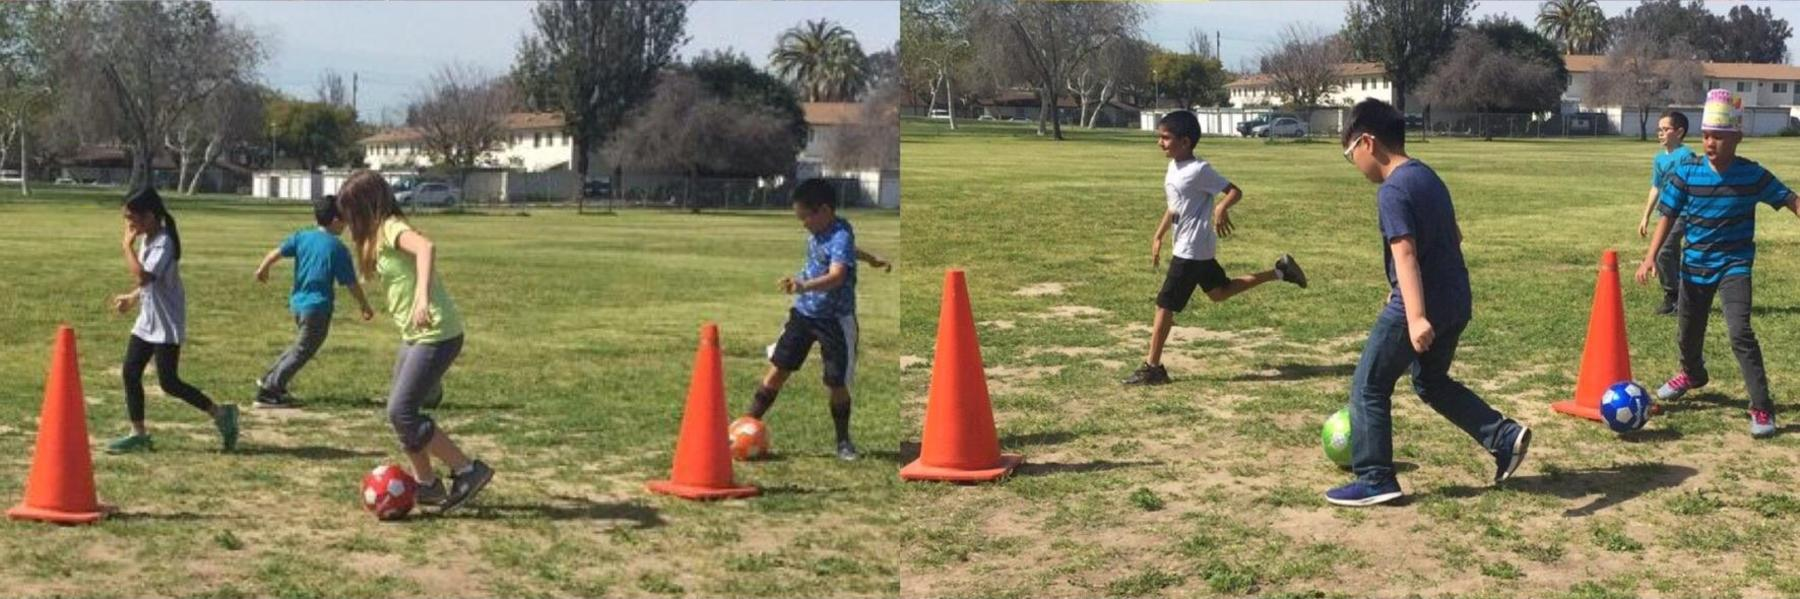 Students running and obstacle course in the field